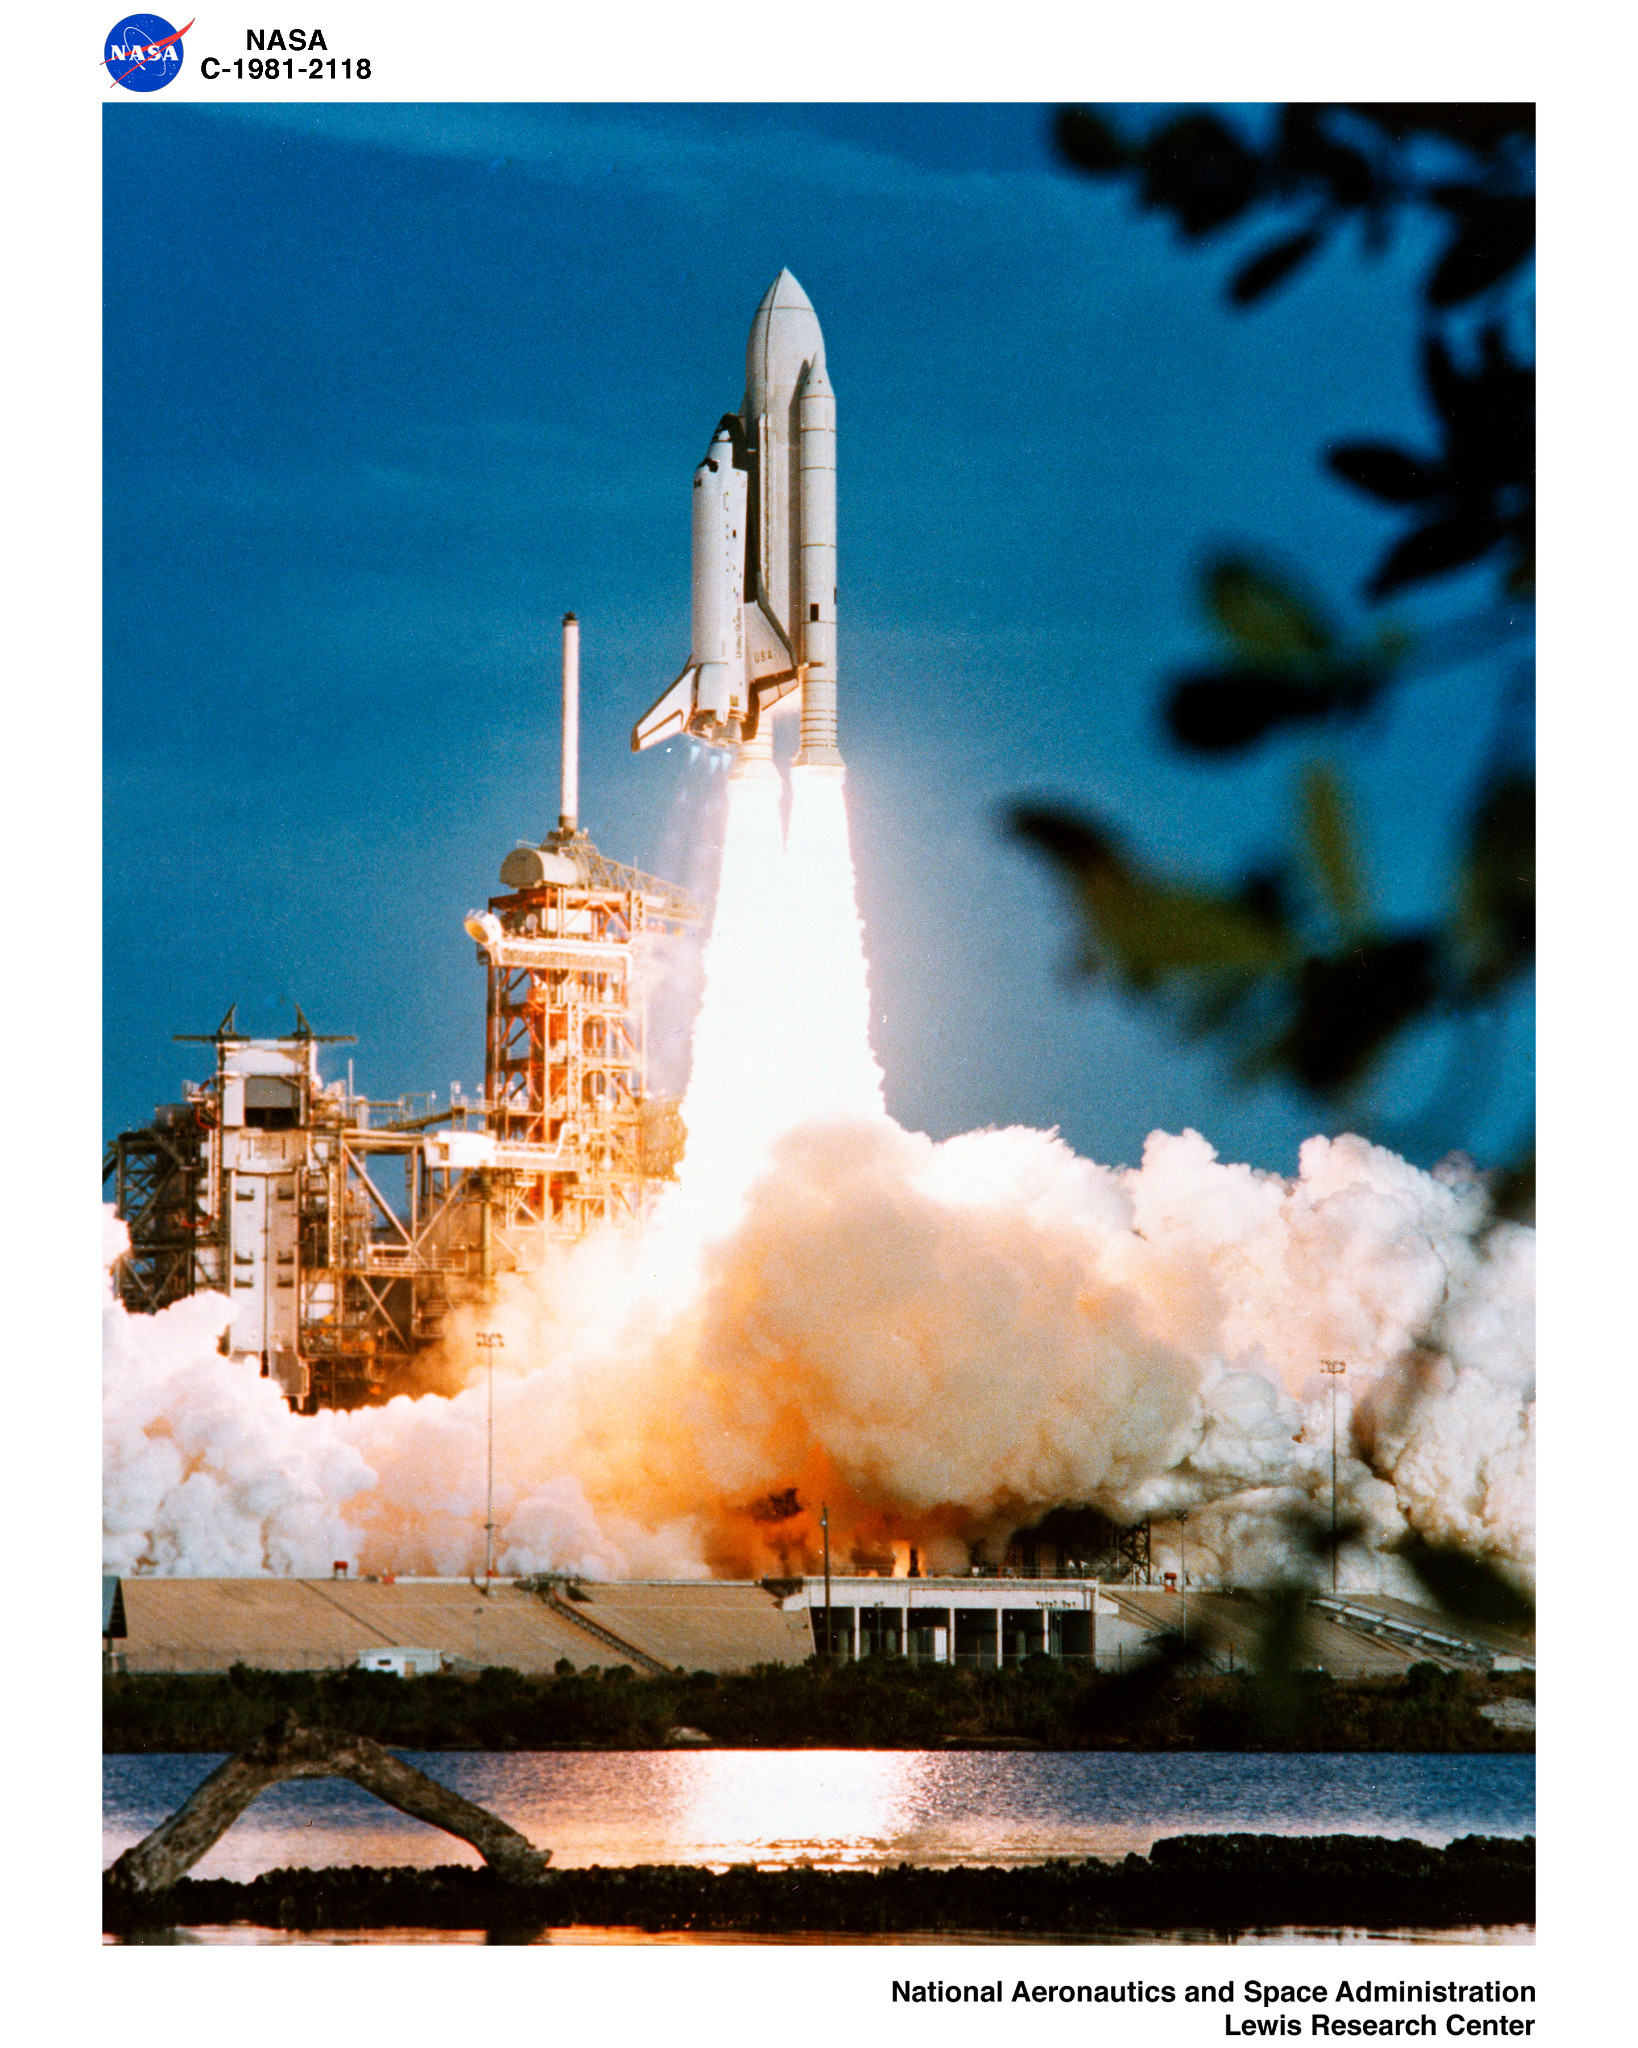 picture of the first u.s space shuttle - photo #3